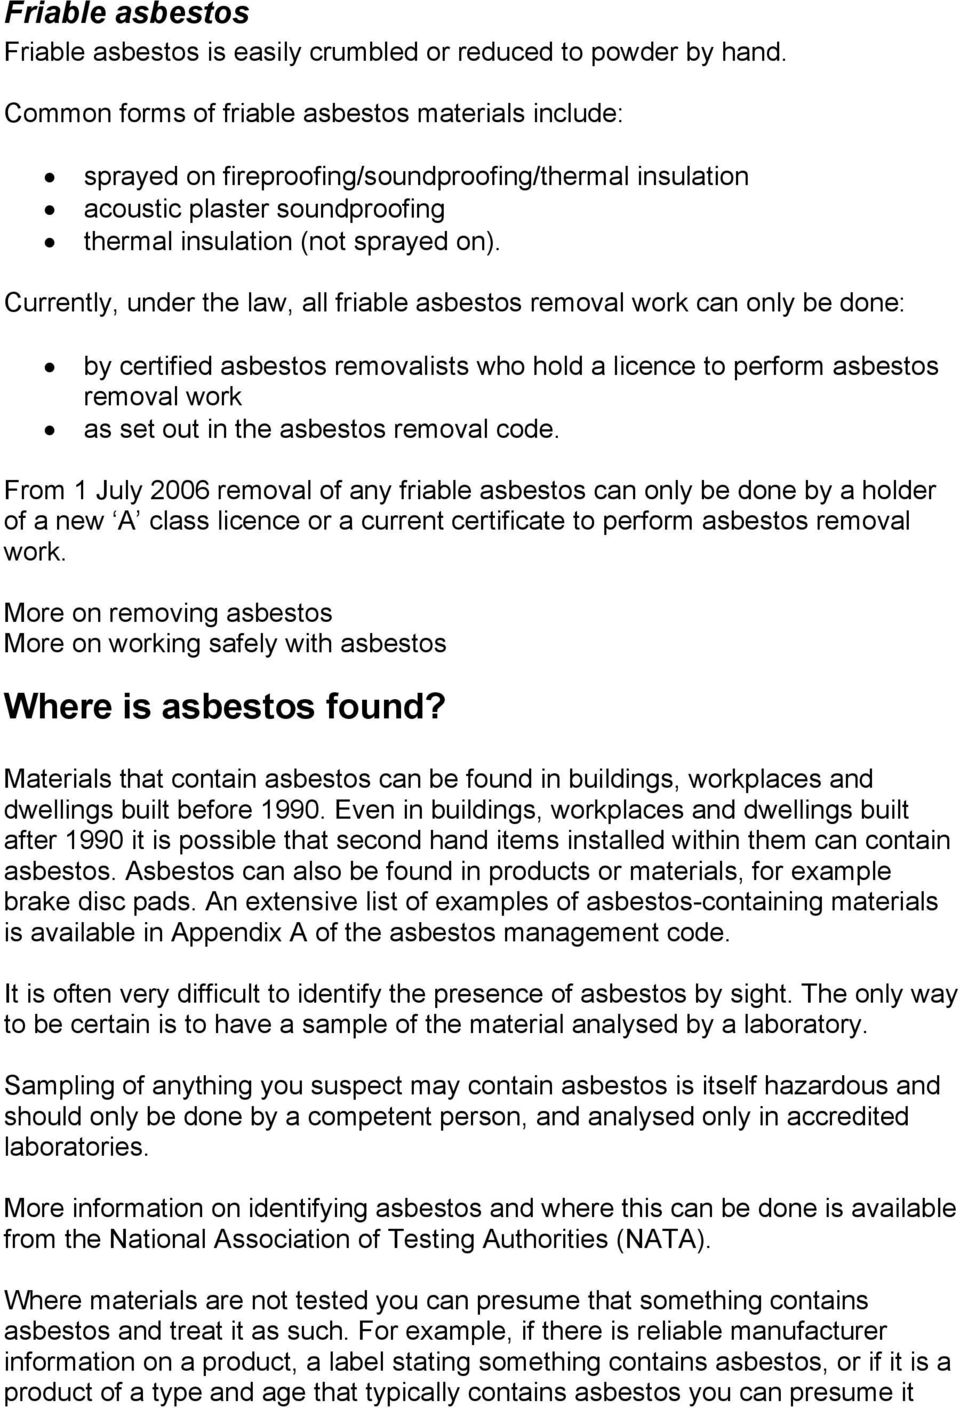 Currently, under the law, all friable asbestos removal work can only be done: by certified asbestos removalists who hold a licence to perform asbestos removal work as set out in the asbestos removal